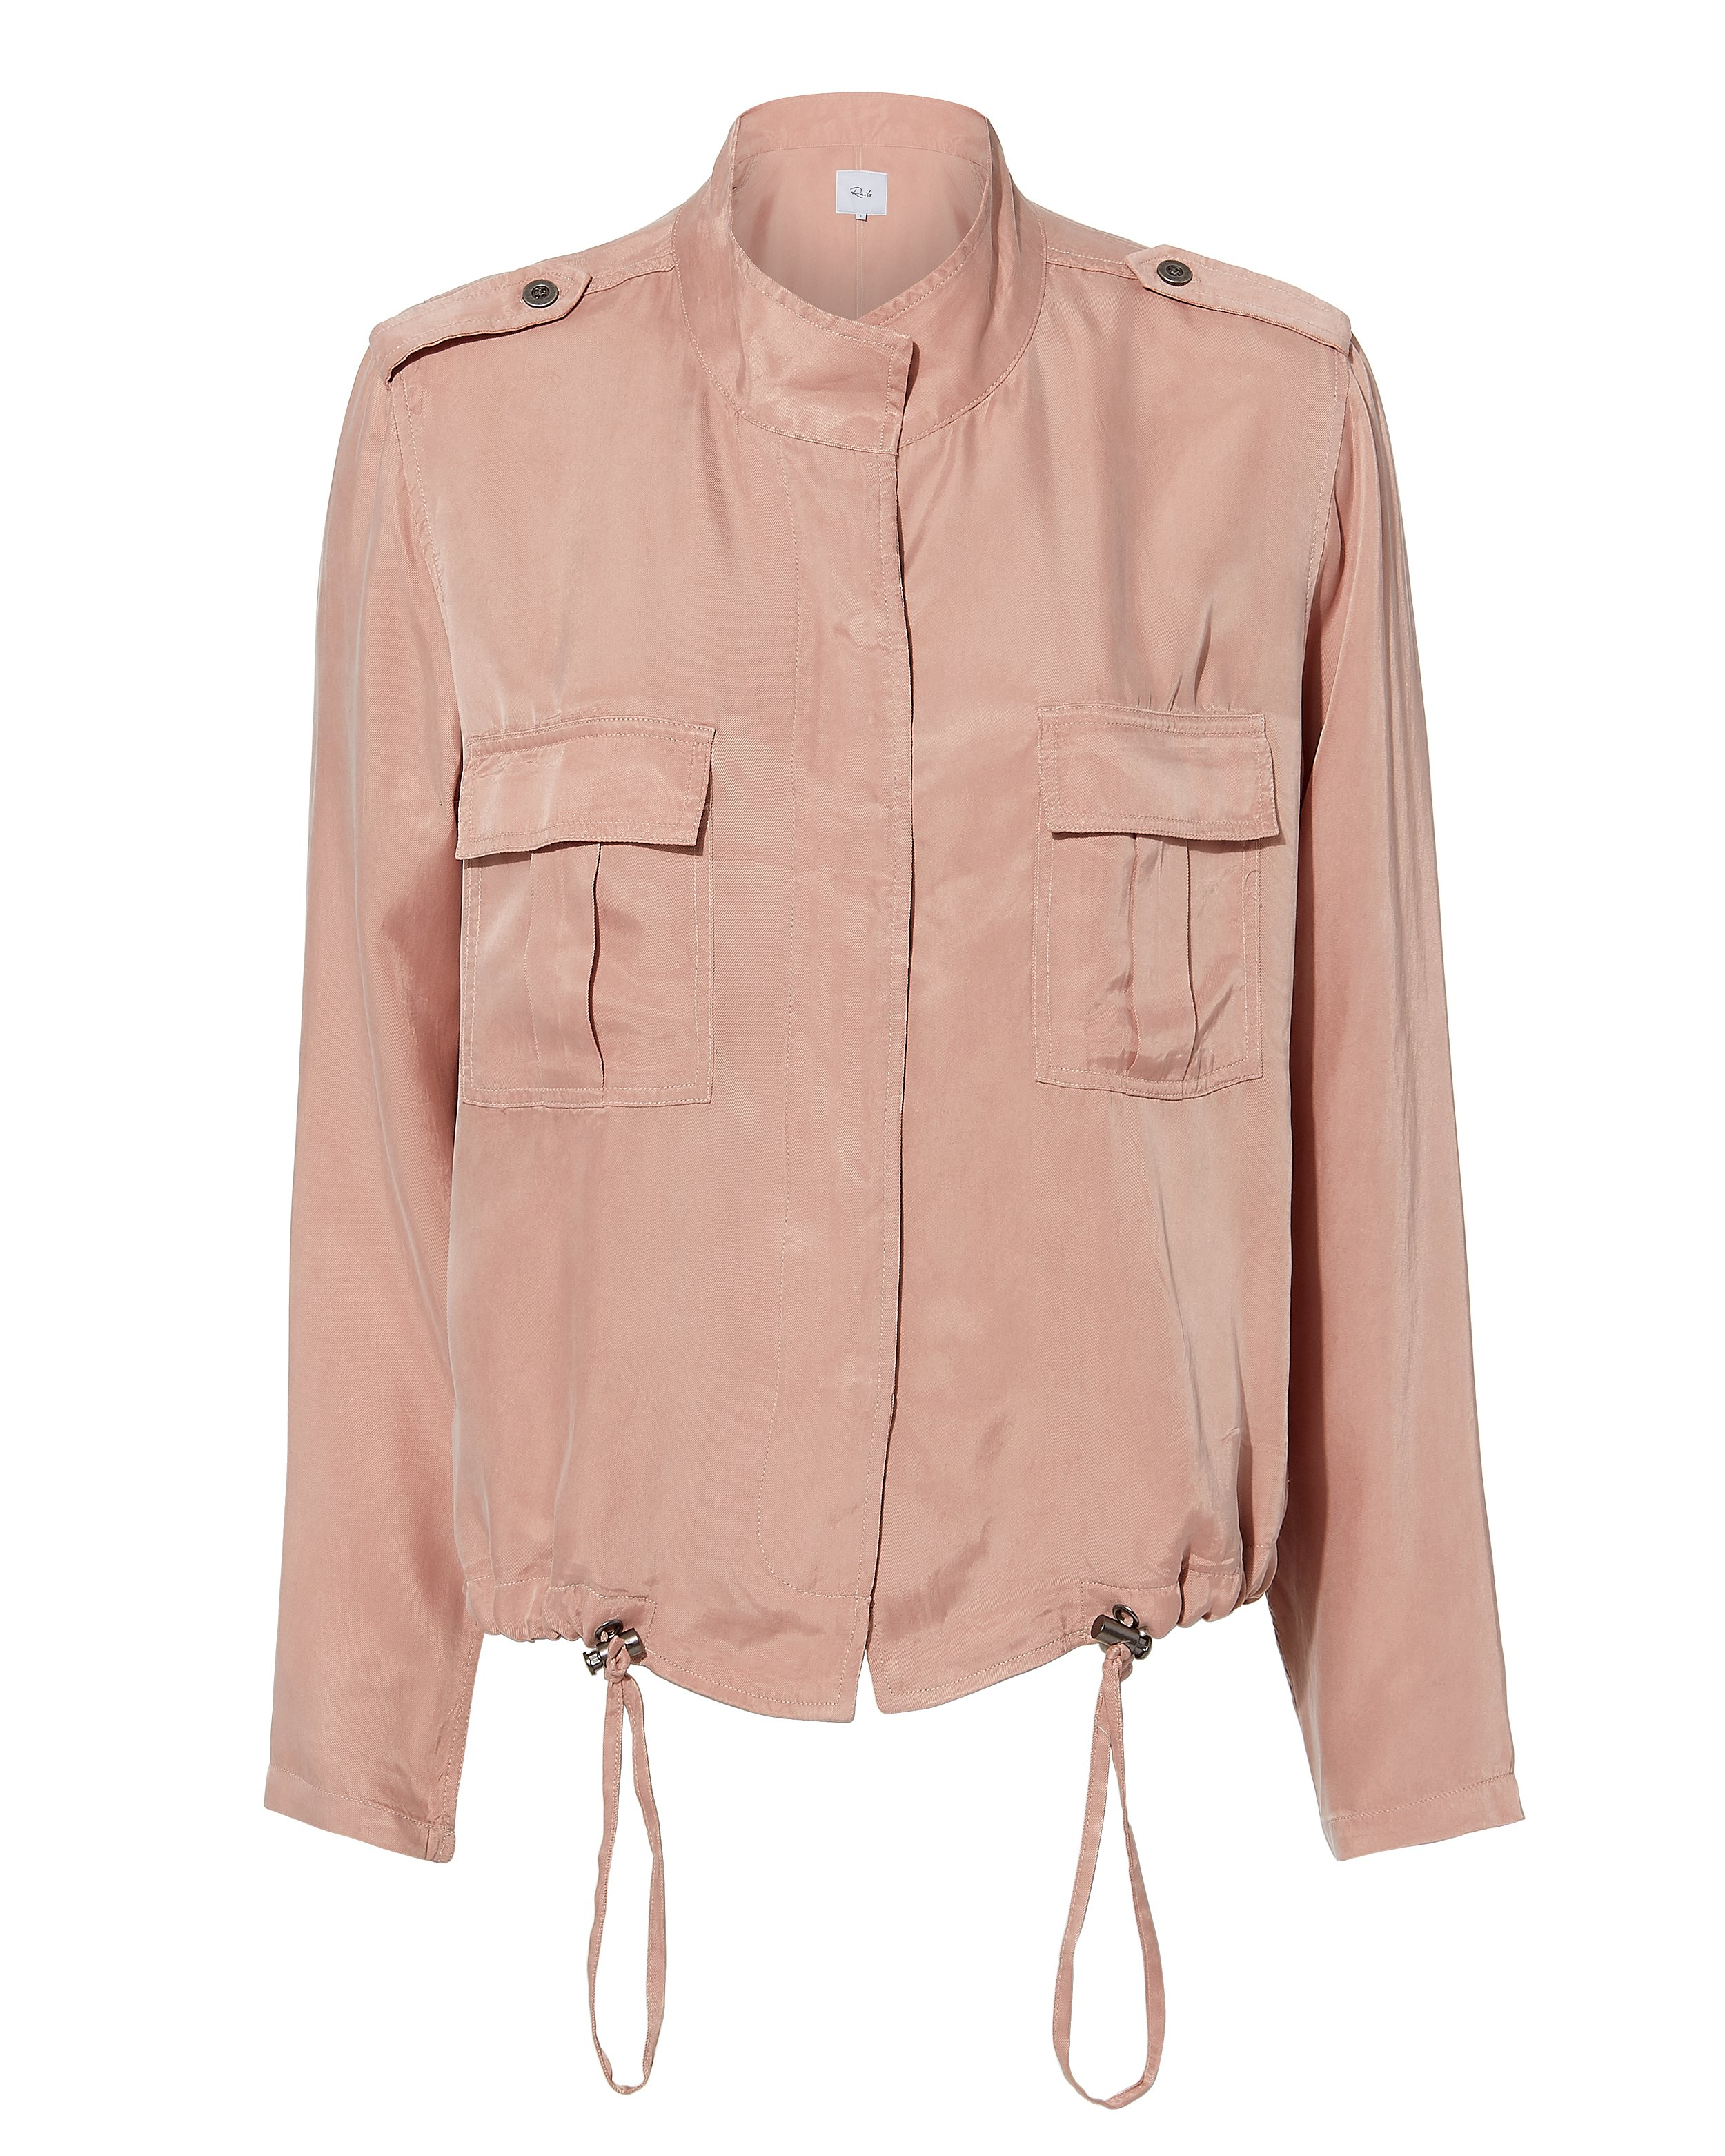 Rowan Blush Jacket by Rails